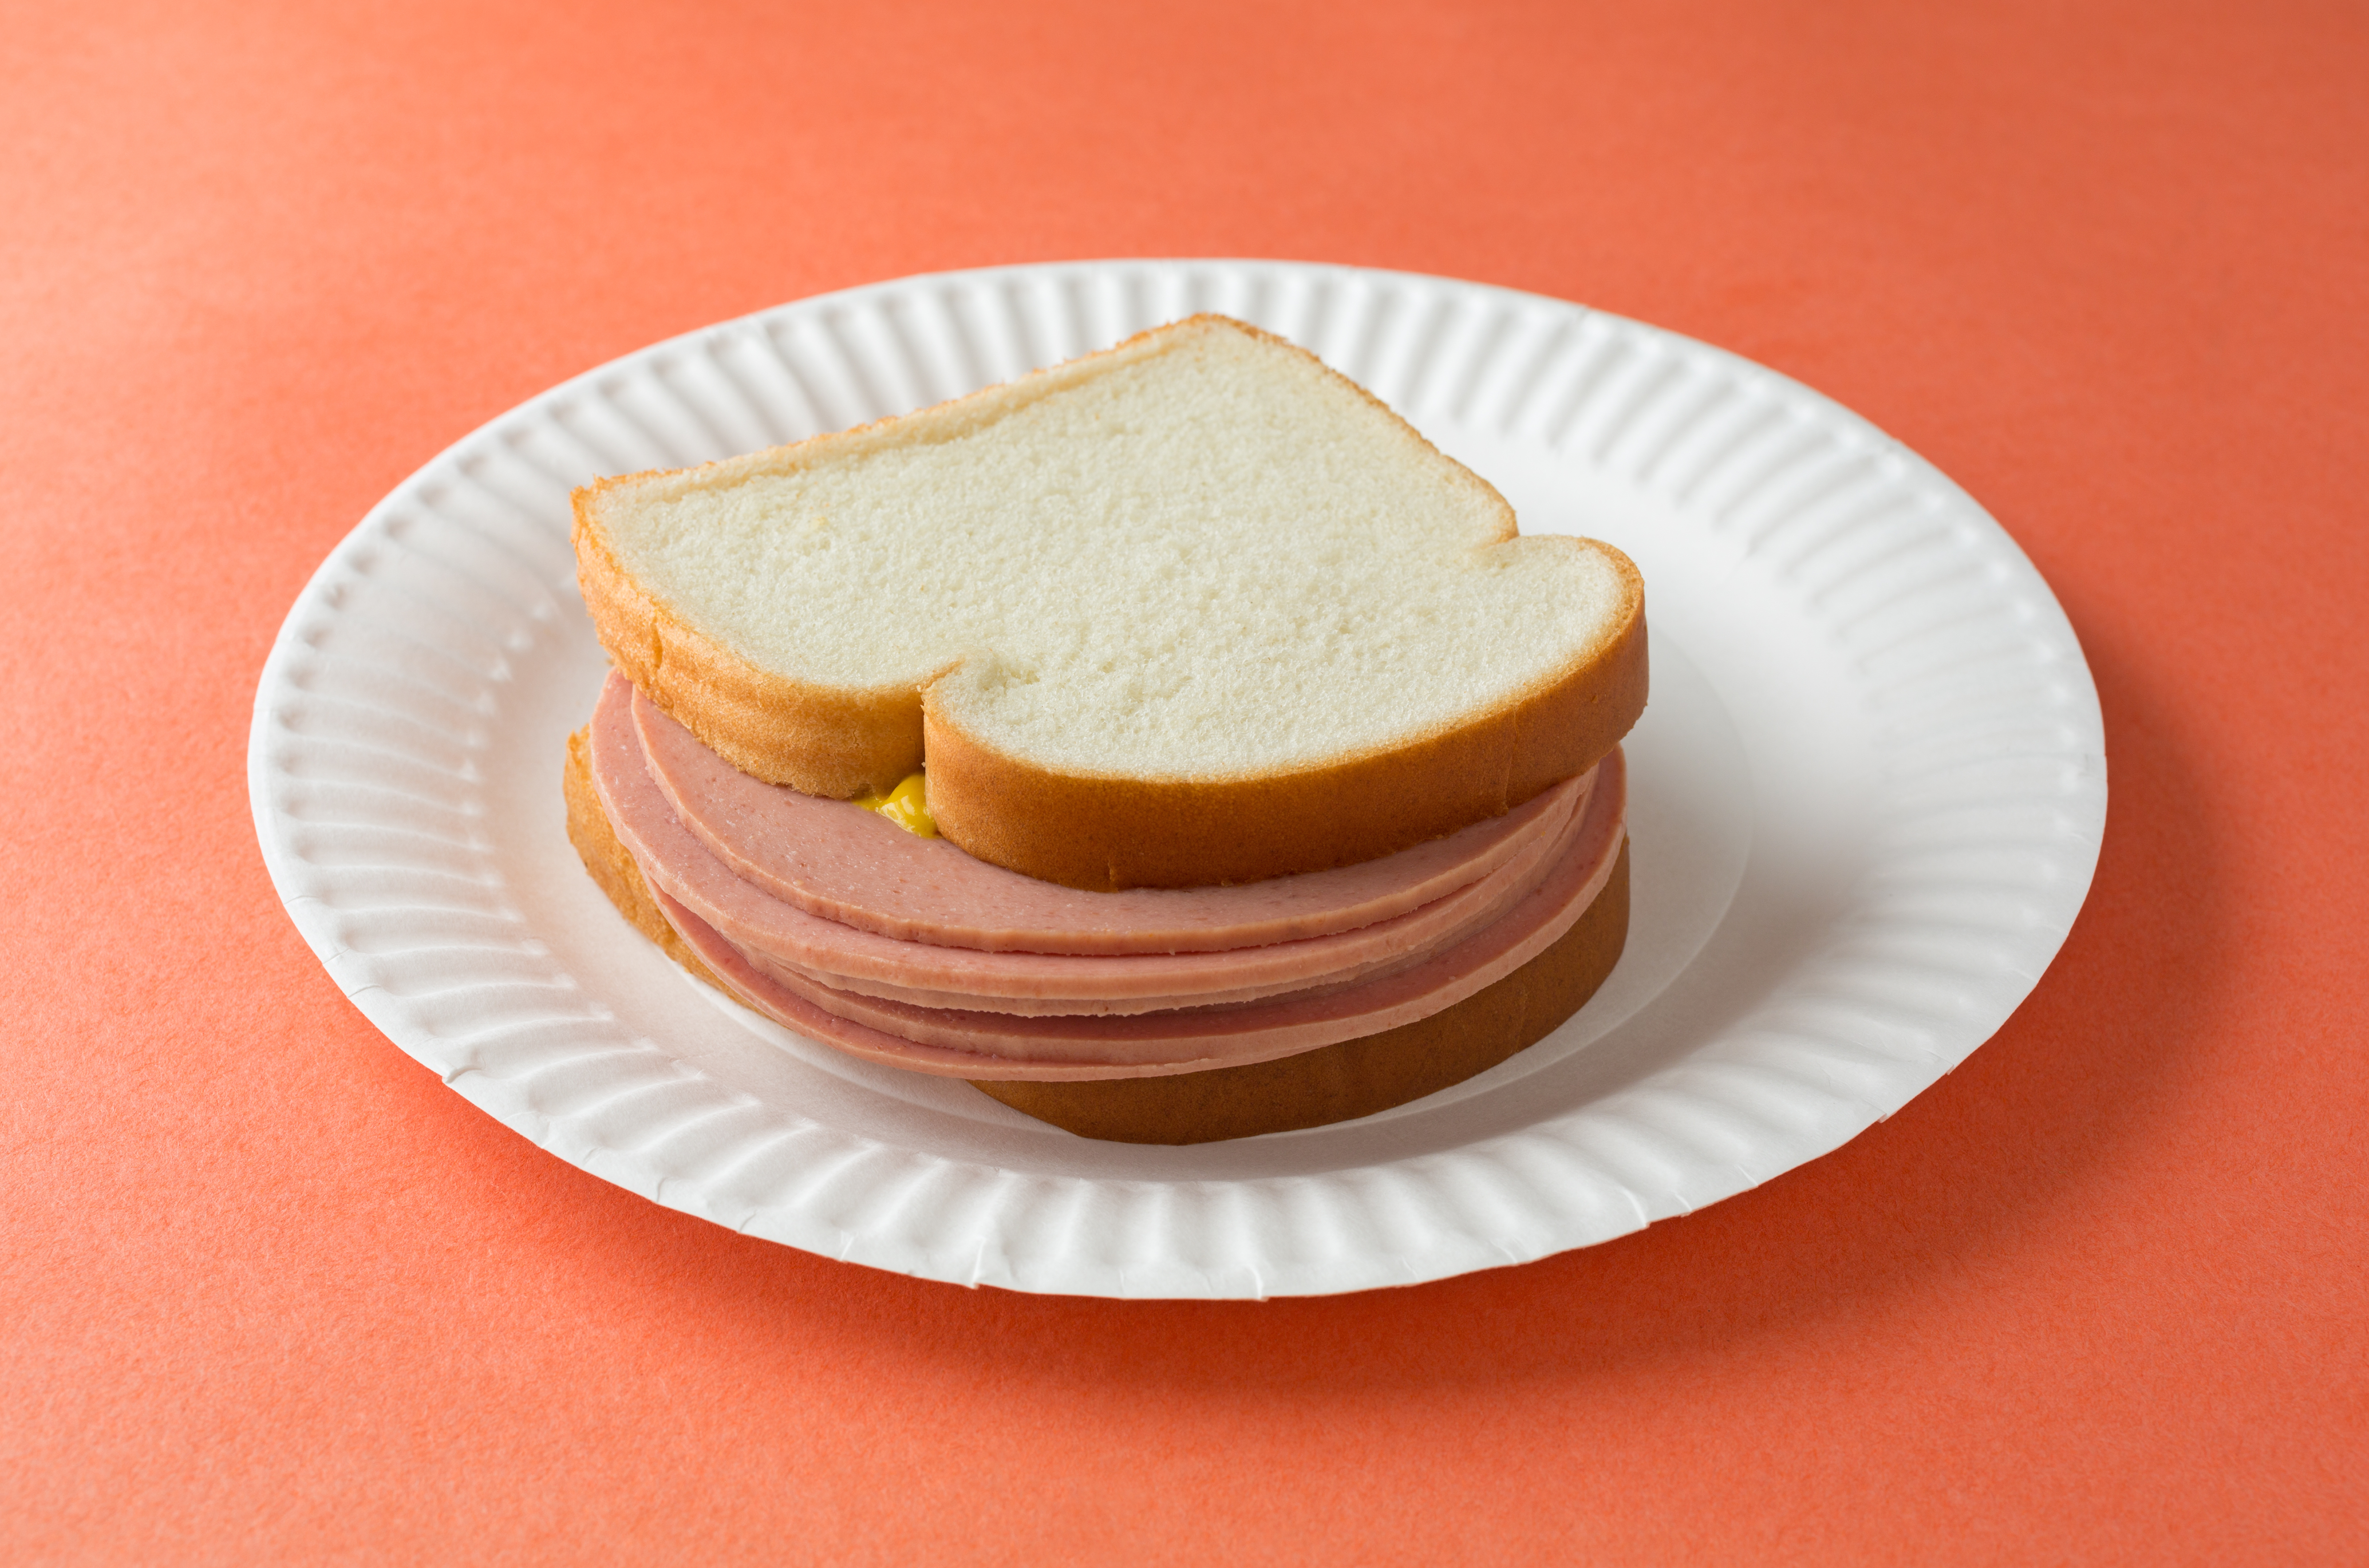 Oscar Mayer Bologna Only 0 08 At Kroger furthermore Salchichas Y Embutidos Oscar Mayer in addition 25 Things You Dont Know About Kaley Cuococbs Big Bang Theory Sweetheart 2012 3 shes A Vegetariansort Of 25 besides Bologna Sandwich Recipe History additionally Botanas Ideales Disfrutar Super Bowl 50. on oscar mayer bacon bologna